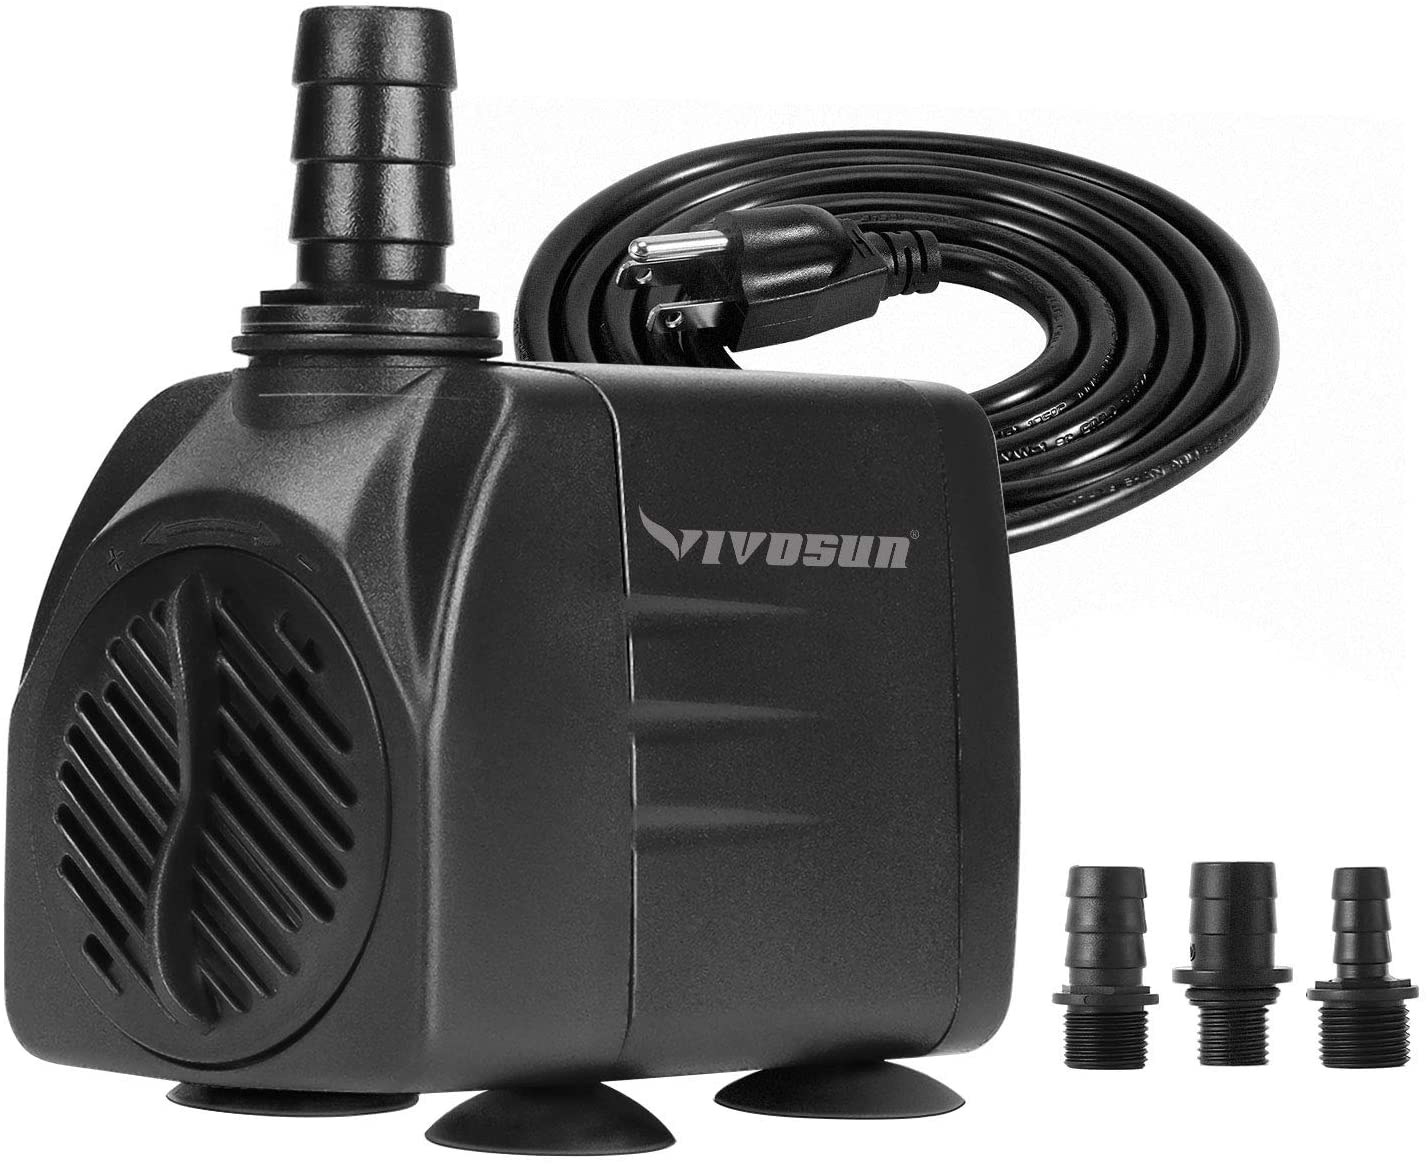 VIVOSUN 480GPH Submersible Pump(1800L/H, 25W), Ultra Quiet Water Pump with 7.2ft High Lift, Fountain Pump with 5ft Power Cord, 3 Nozzles for Fish Tank, Aquarium, Statuary, Hydroponics